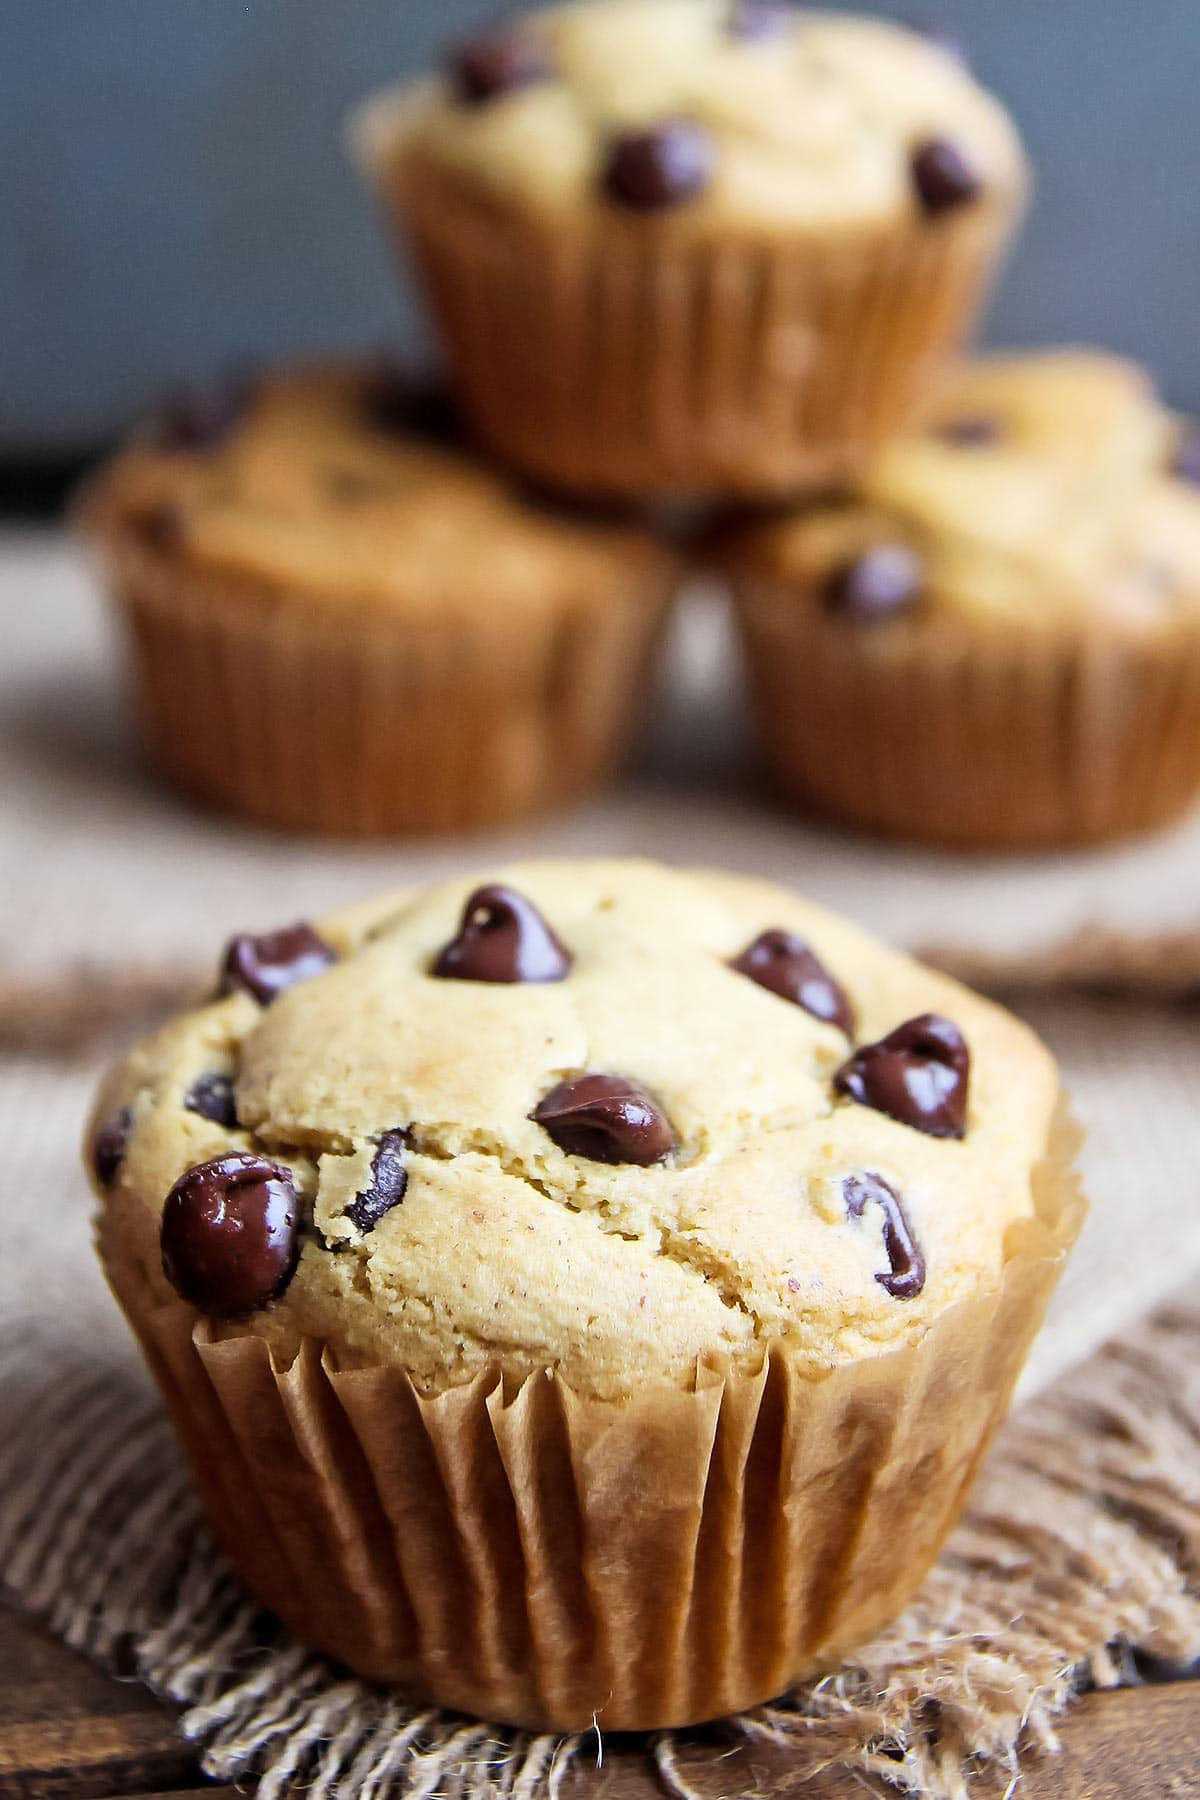 Coconut Flour Peanut Butter Muffins with chocolate chips